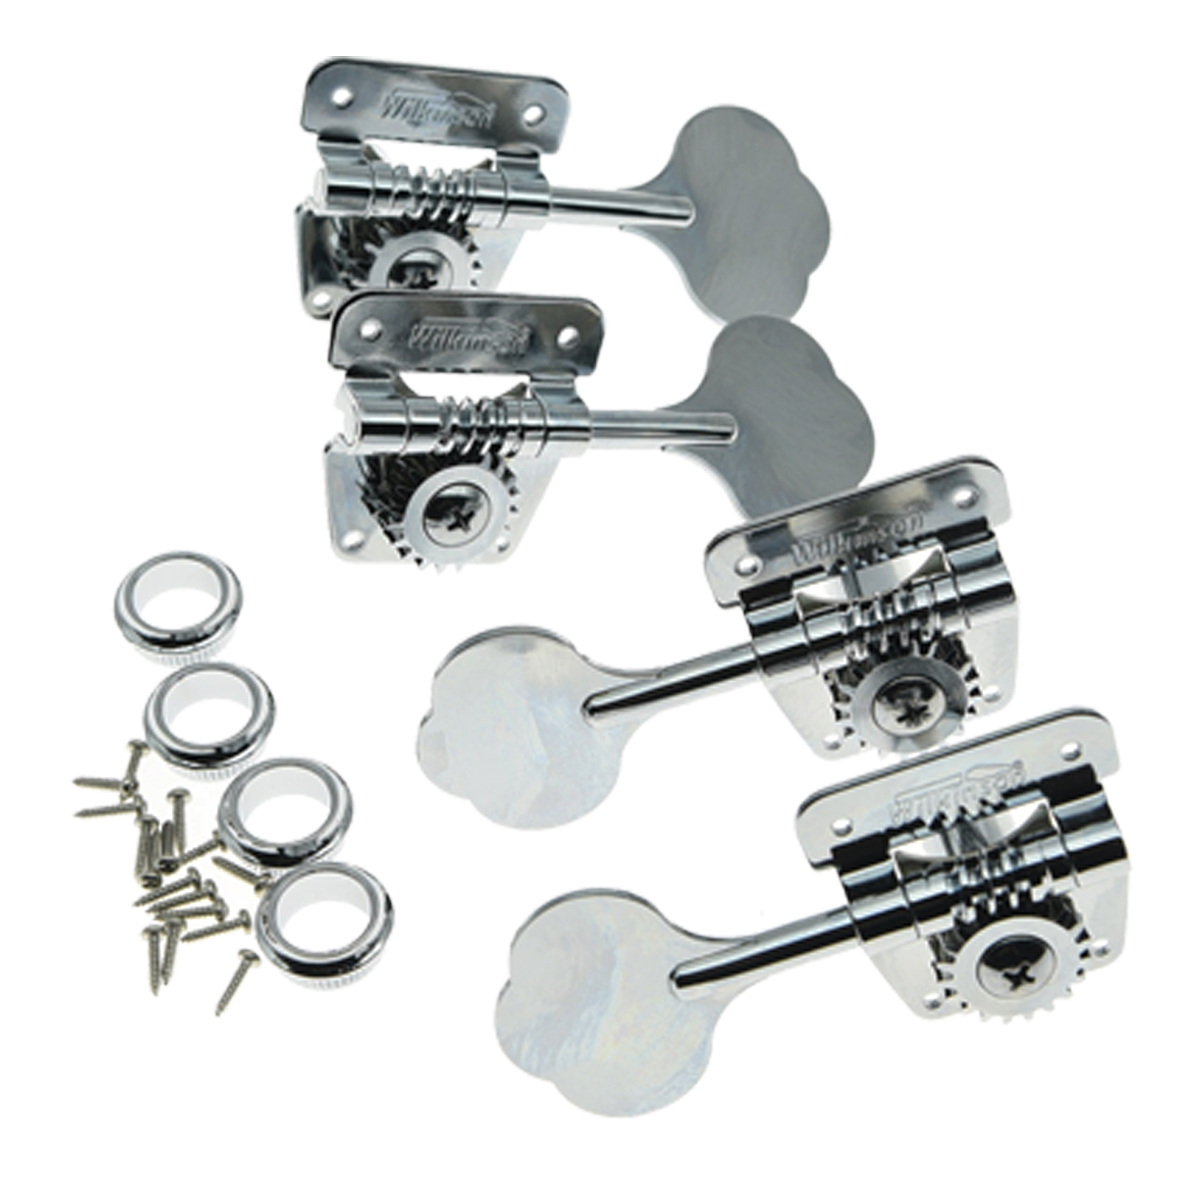 Wilkinson Black/Chrome Bass Tuners Tuning Pegs for 70s Vintage J Bass Precision P Bass ...